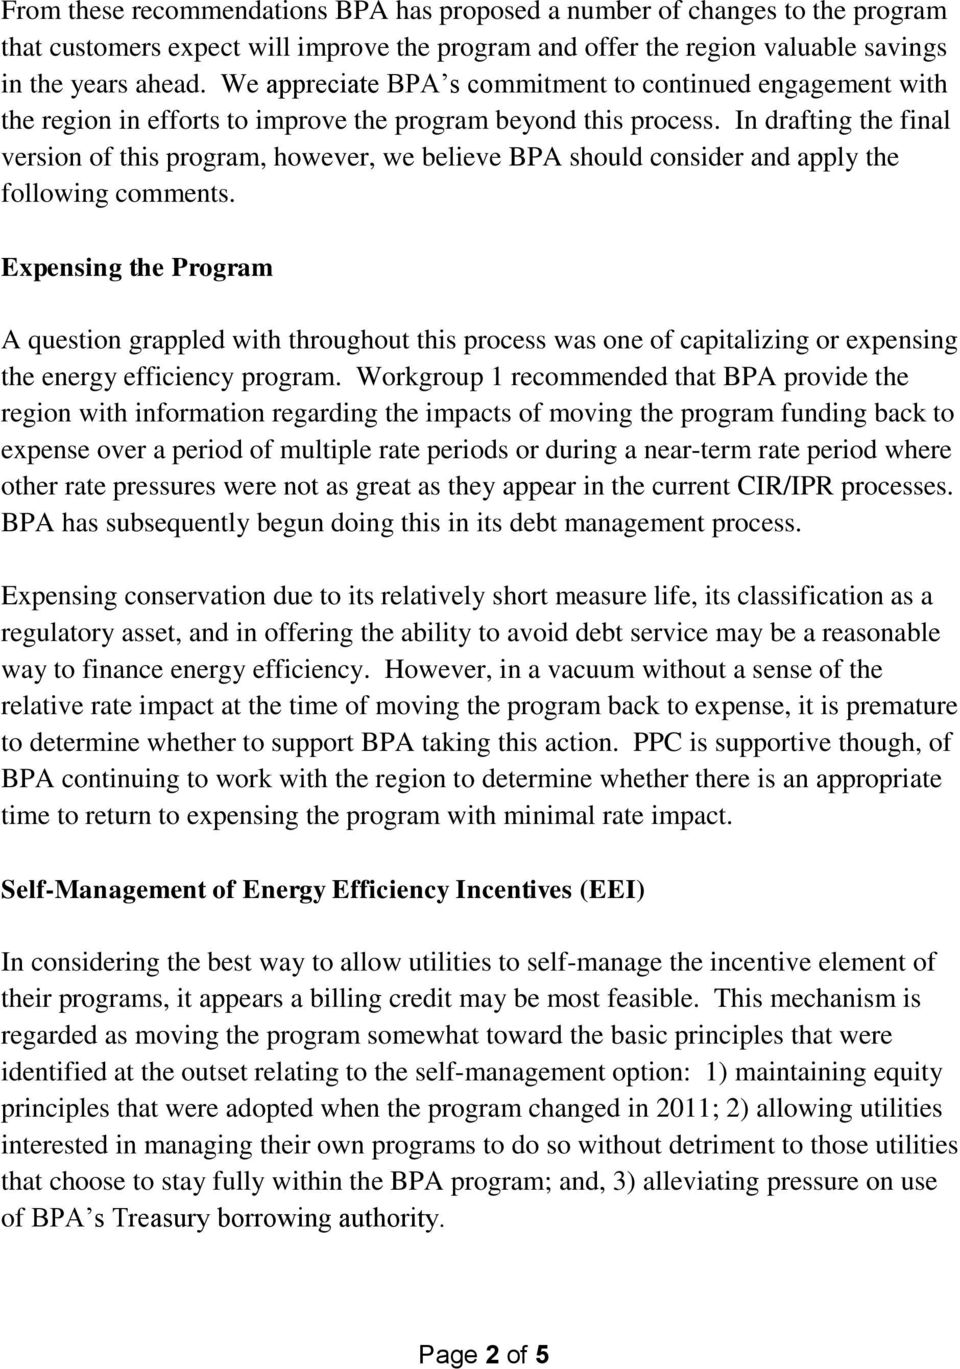 In drafting the final version of this program, however, we believe BPA should consider and apply the following comments.